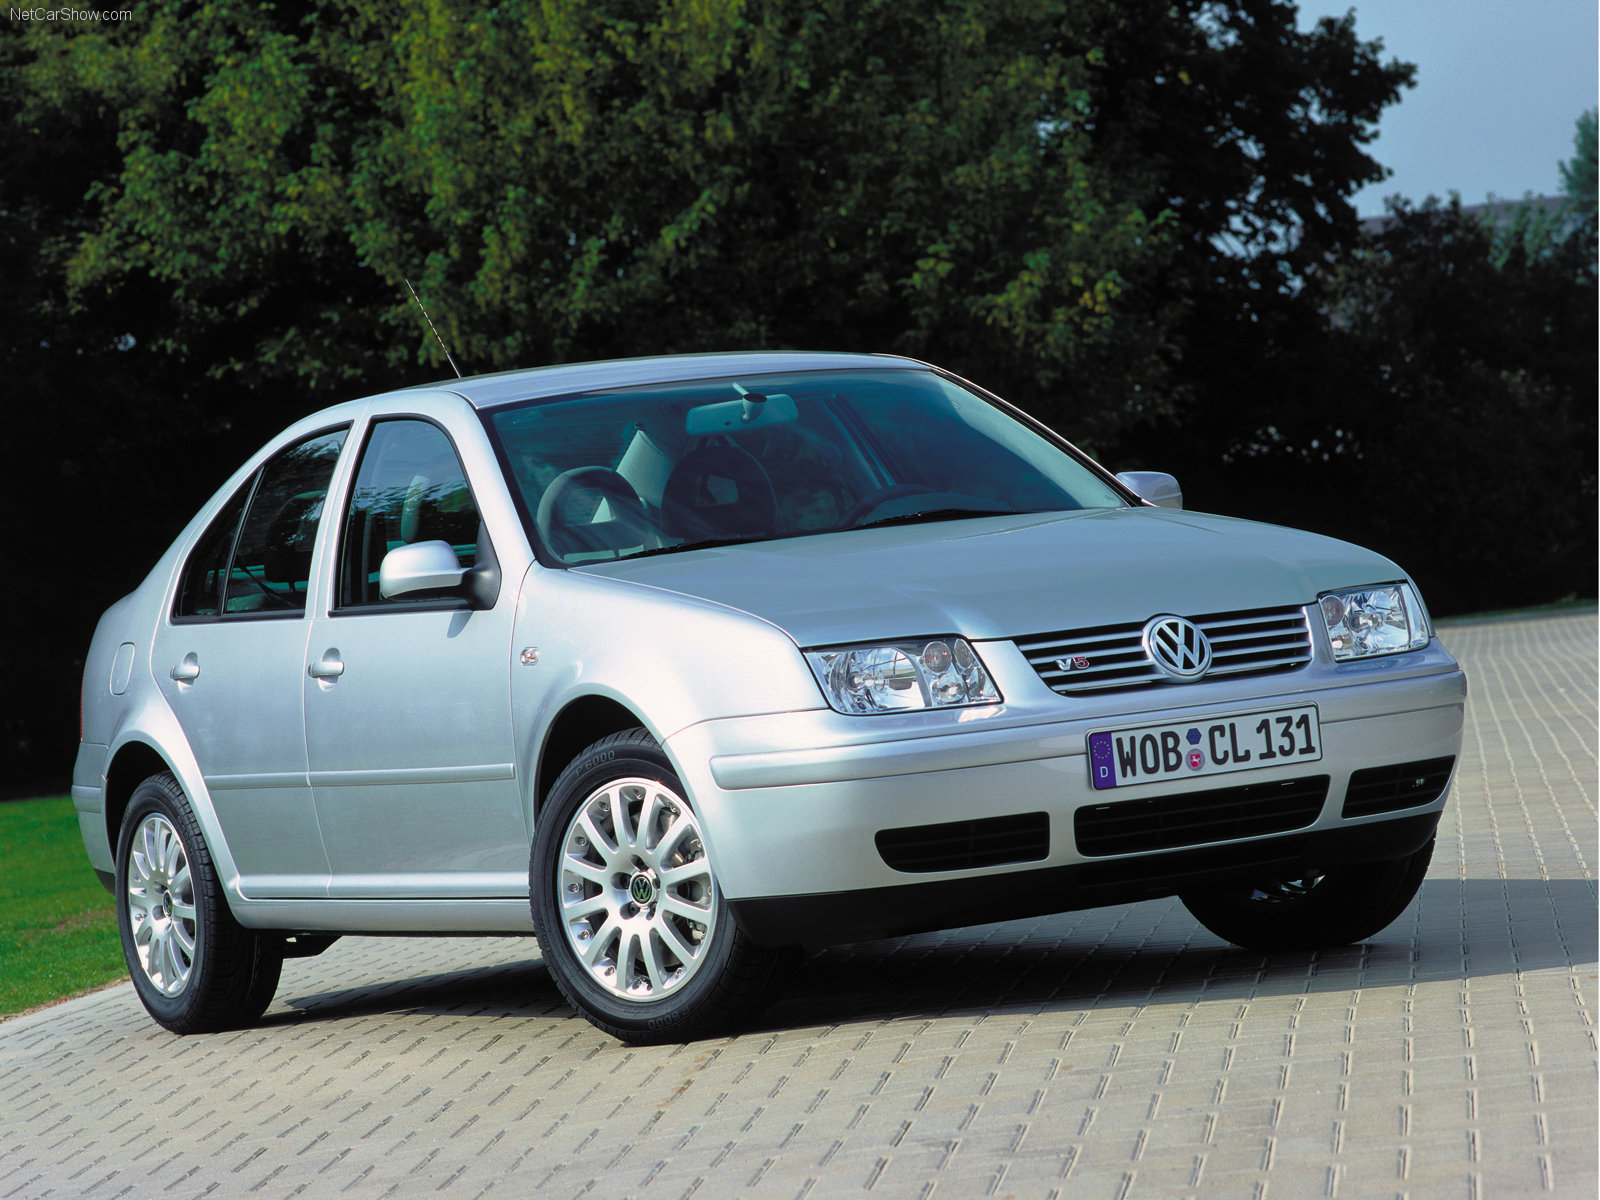 1999 vw jetta parts with Sedan on Pd 10514 USB Car Stereo Adapter Digital CD Changer SD MP3 AUX Bluetooth Interface For ISO 8 Pin VW Audi Skoda Seat Ford also 371595257228 as well 18t Aeb Engine Motor Swap Wiring Ecu Vw Jetta Golf Gti Passat Mk1 Mk2 Mk3 Mk4 Cp044283 further Clutch Replacement Cost likewise Auto Trans Fluid ATF 5 Liter 29738.